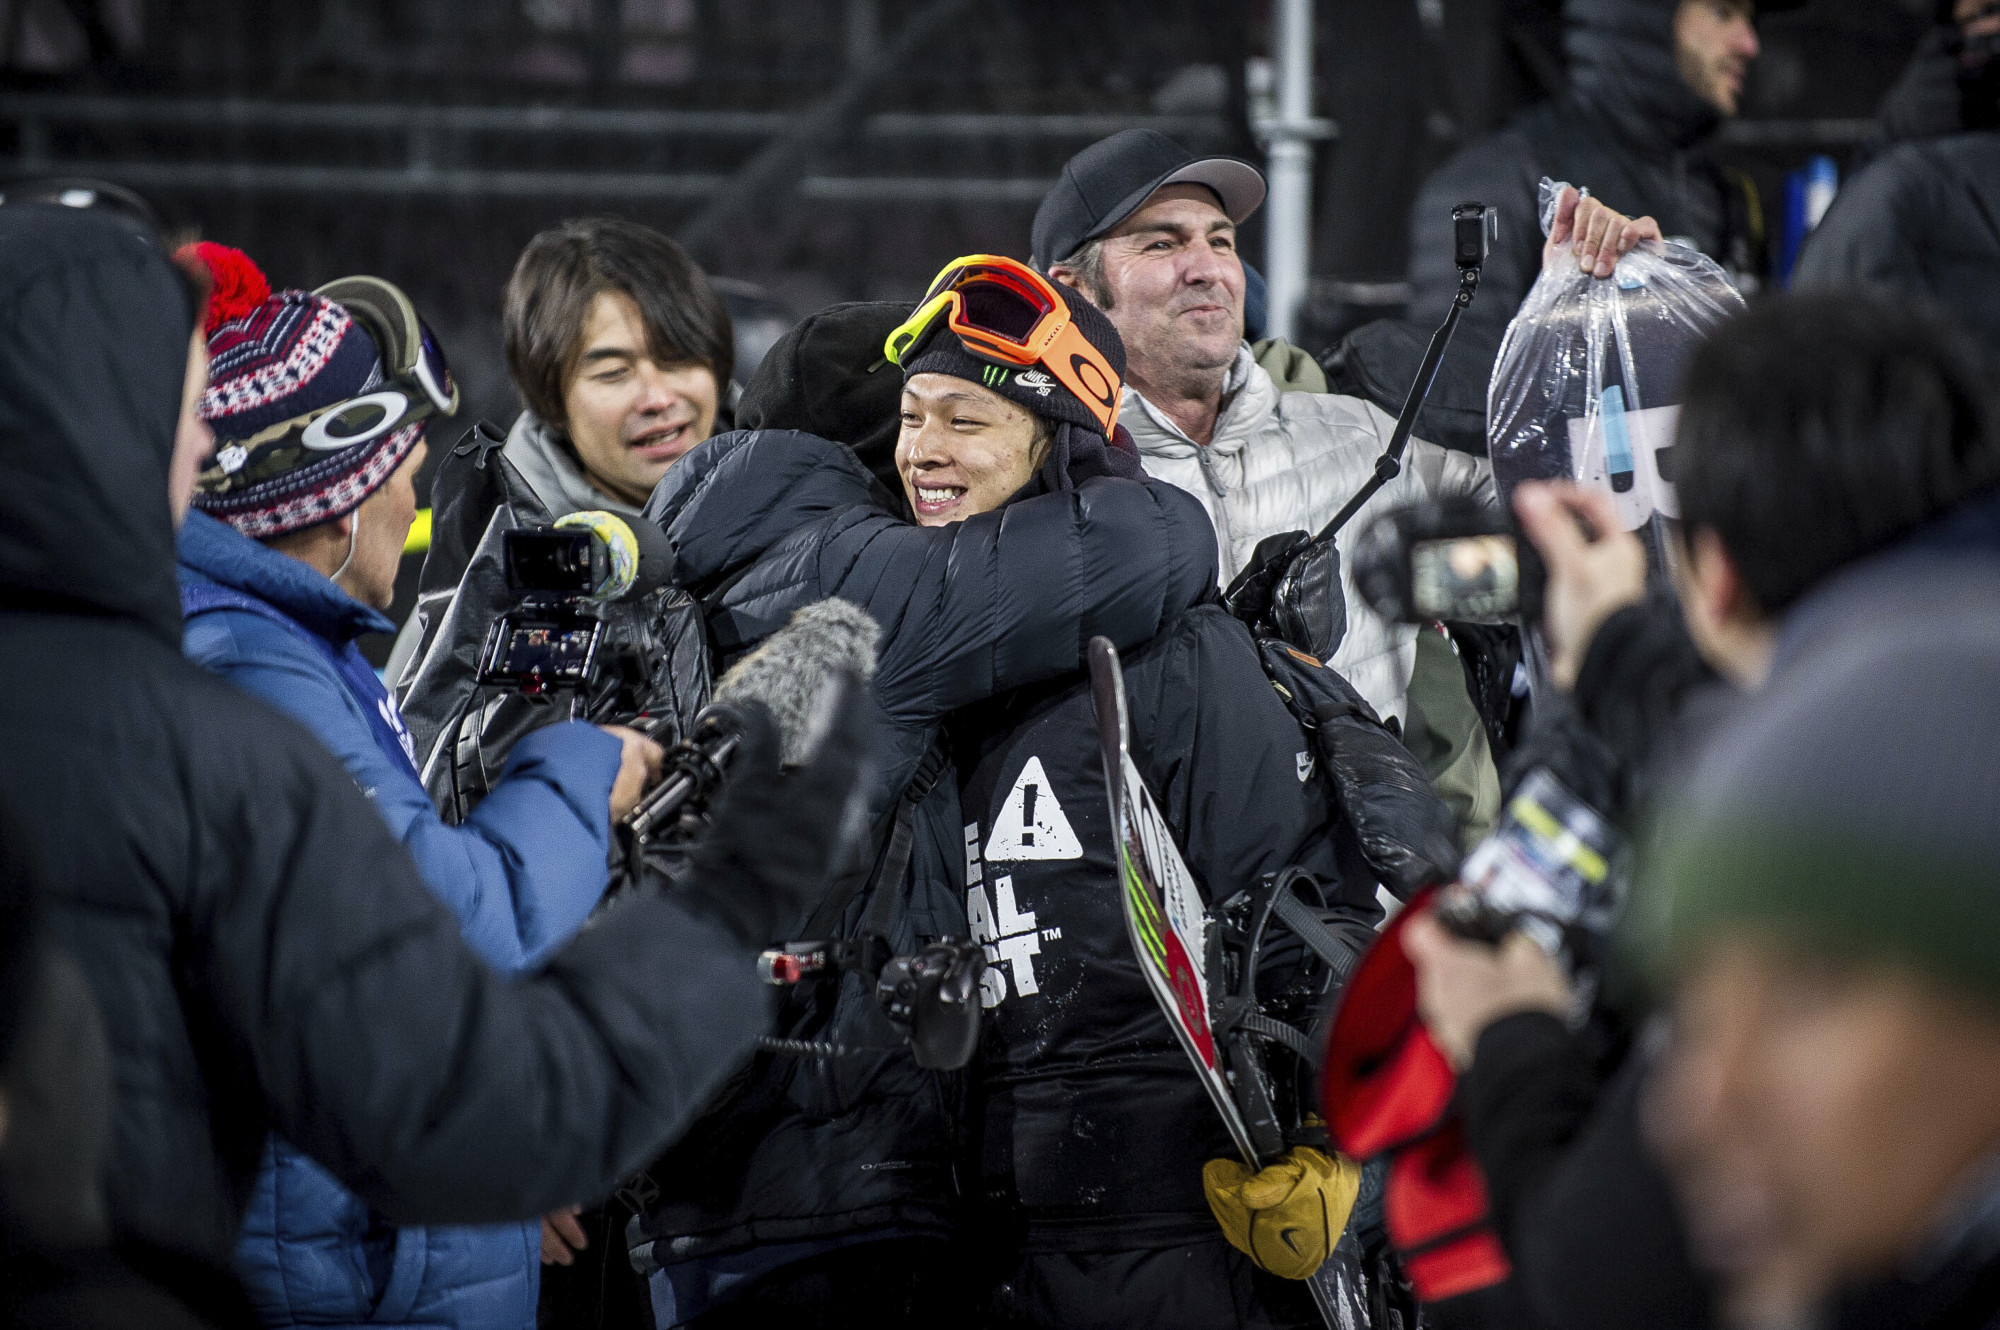 Ayumu Hirano (center) is congratulated after winning the superpipe final at the Winter X Games on Sunday in Aspen, Colorado.   AP